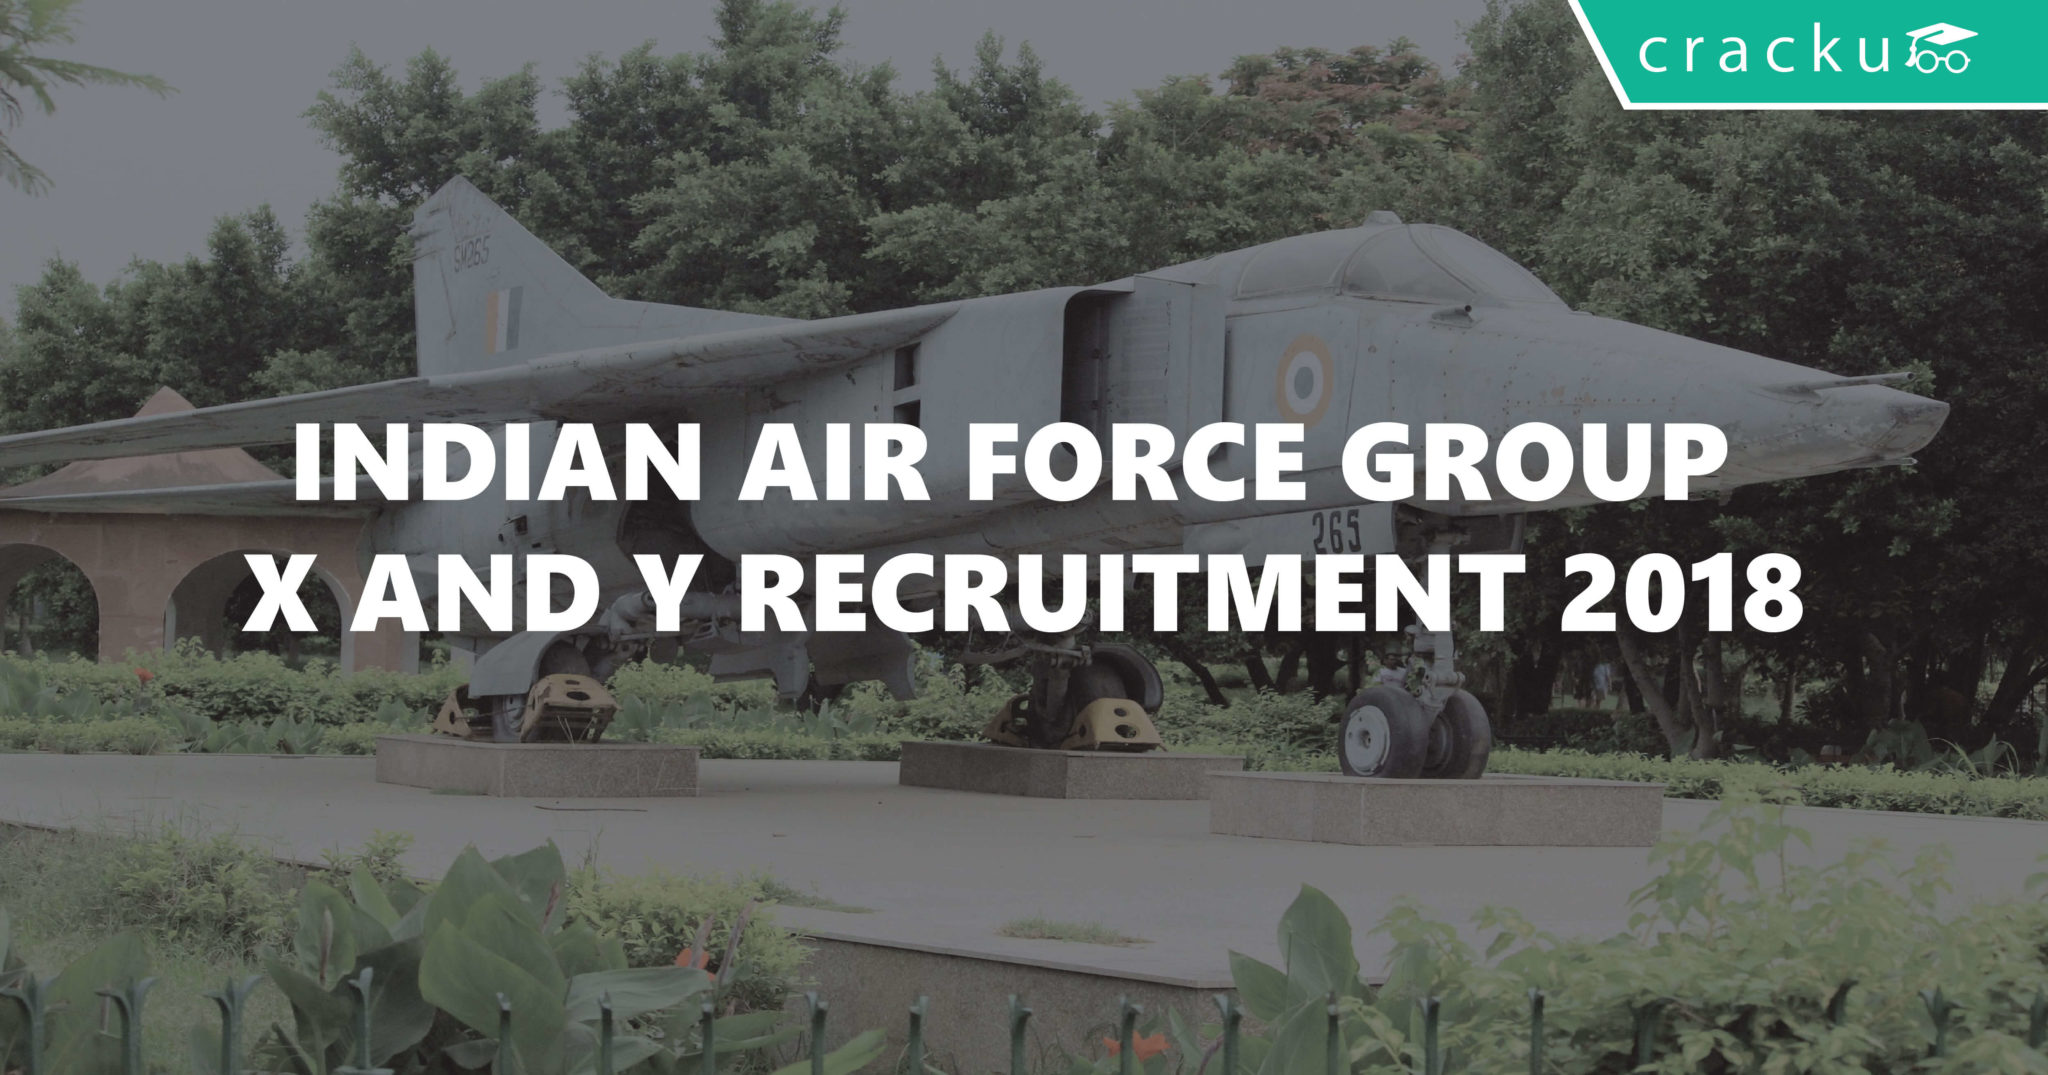 Iaf indian air force group x and y recruitment 2018 date indian air force group x and y recruitment 2018 nvjuhfo Choice Image